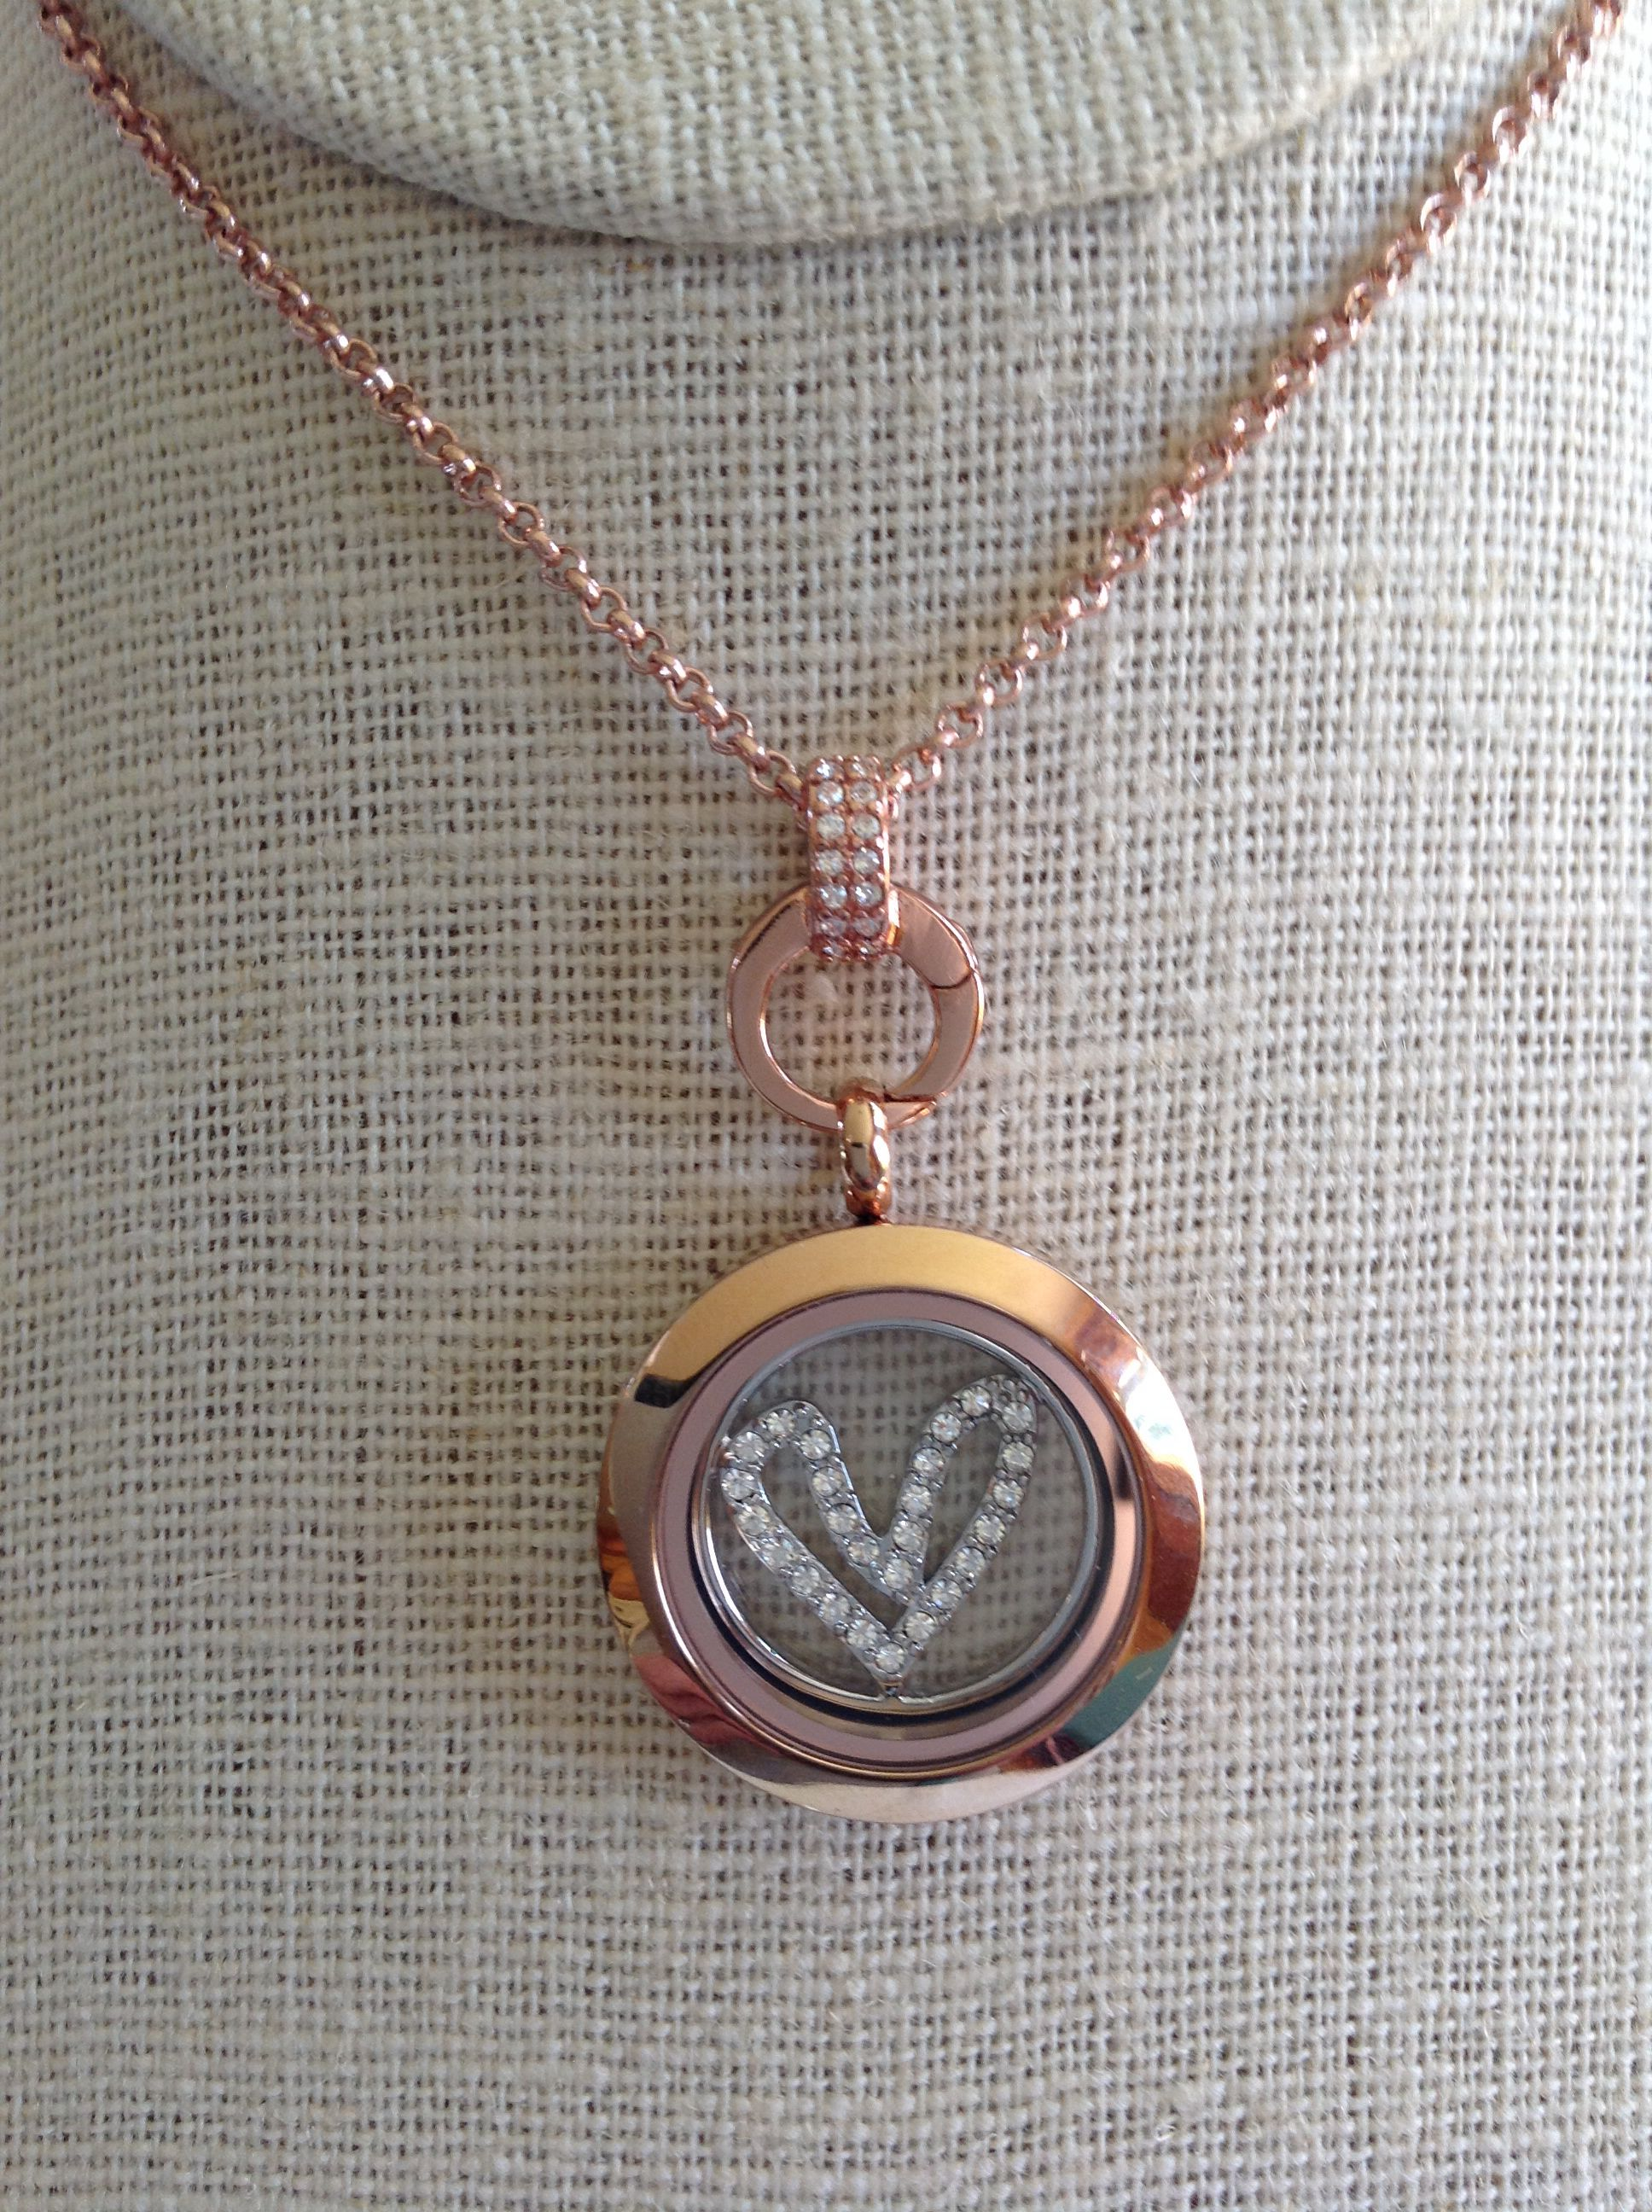 Best Origami Owl Classic Hinged Living Licket Heart In Rose Gold ...   2592x1936